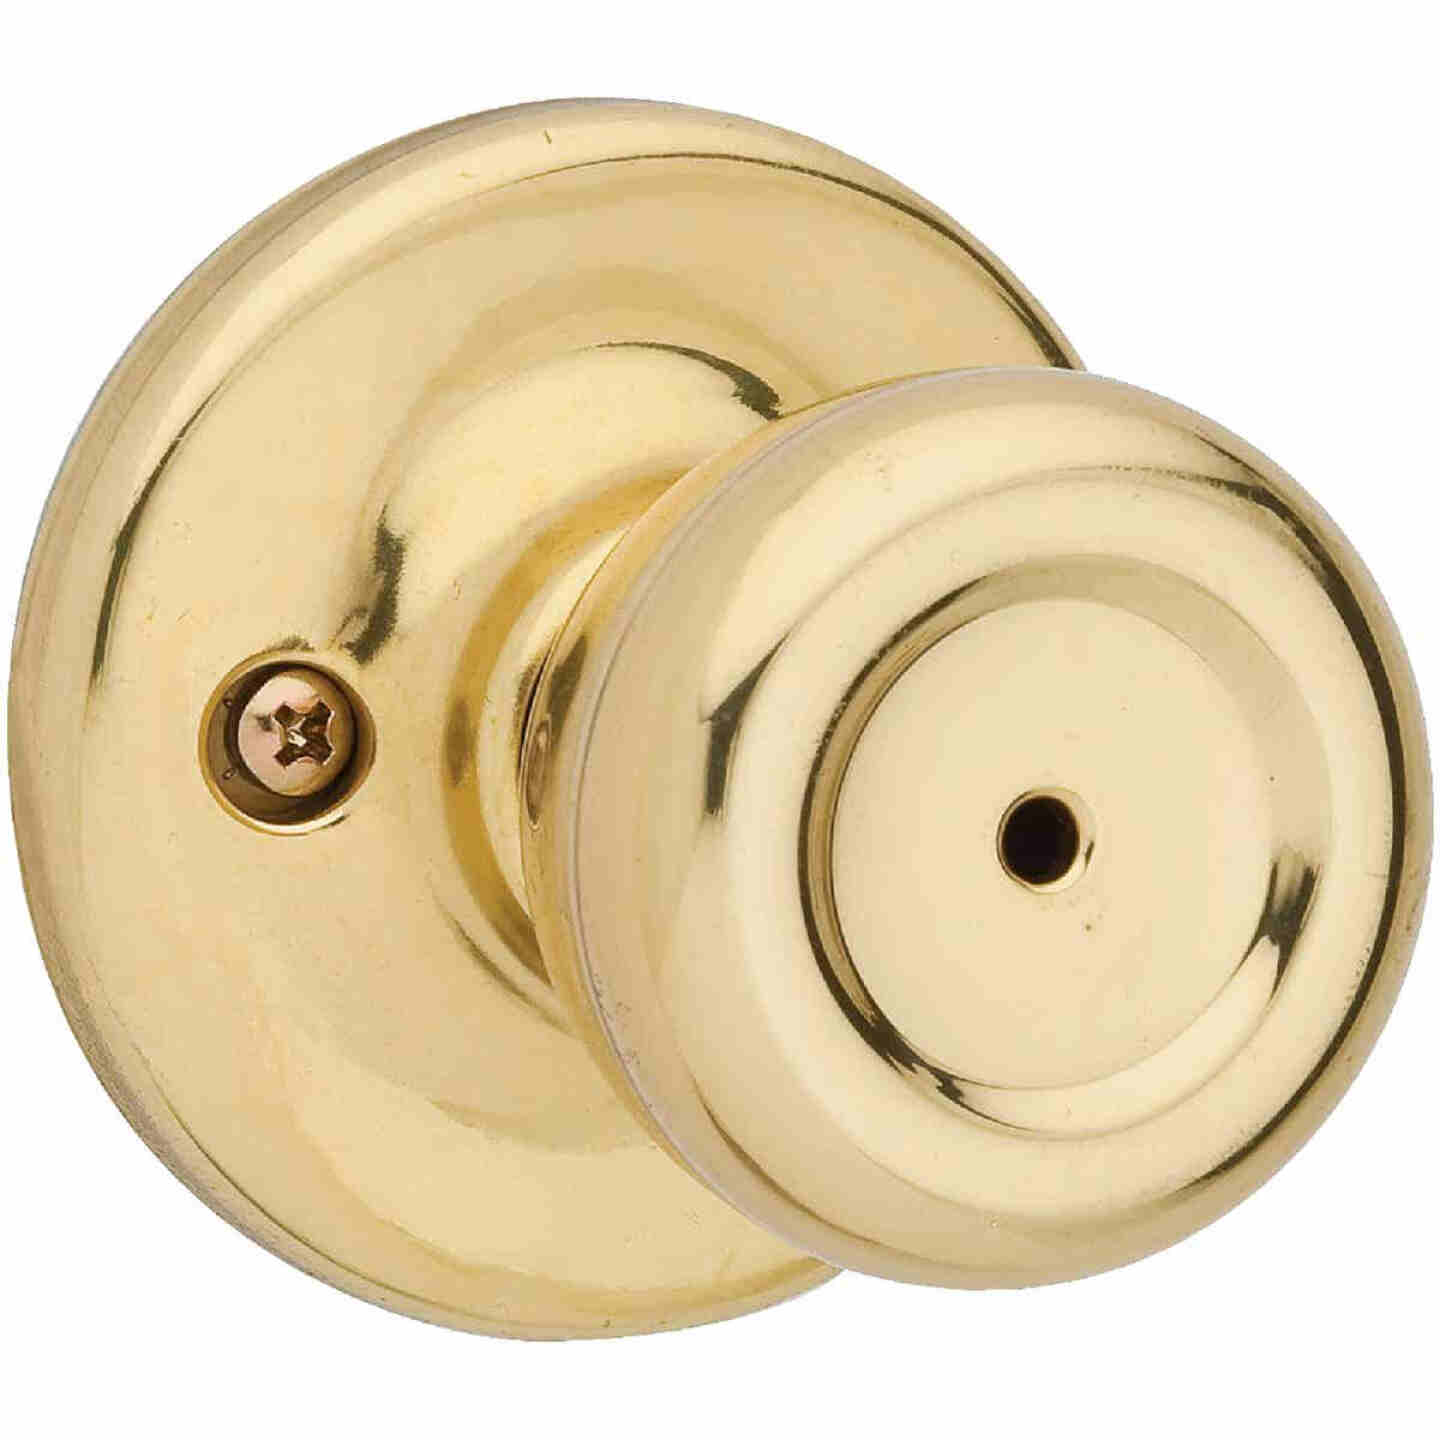 Kwikset Tylo Polished Brass/Satin Chrome Bed & Bath Door Knob Image 1